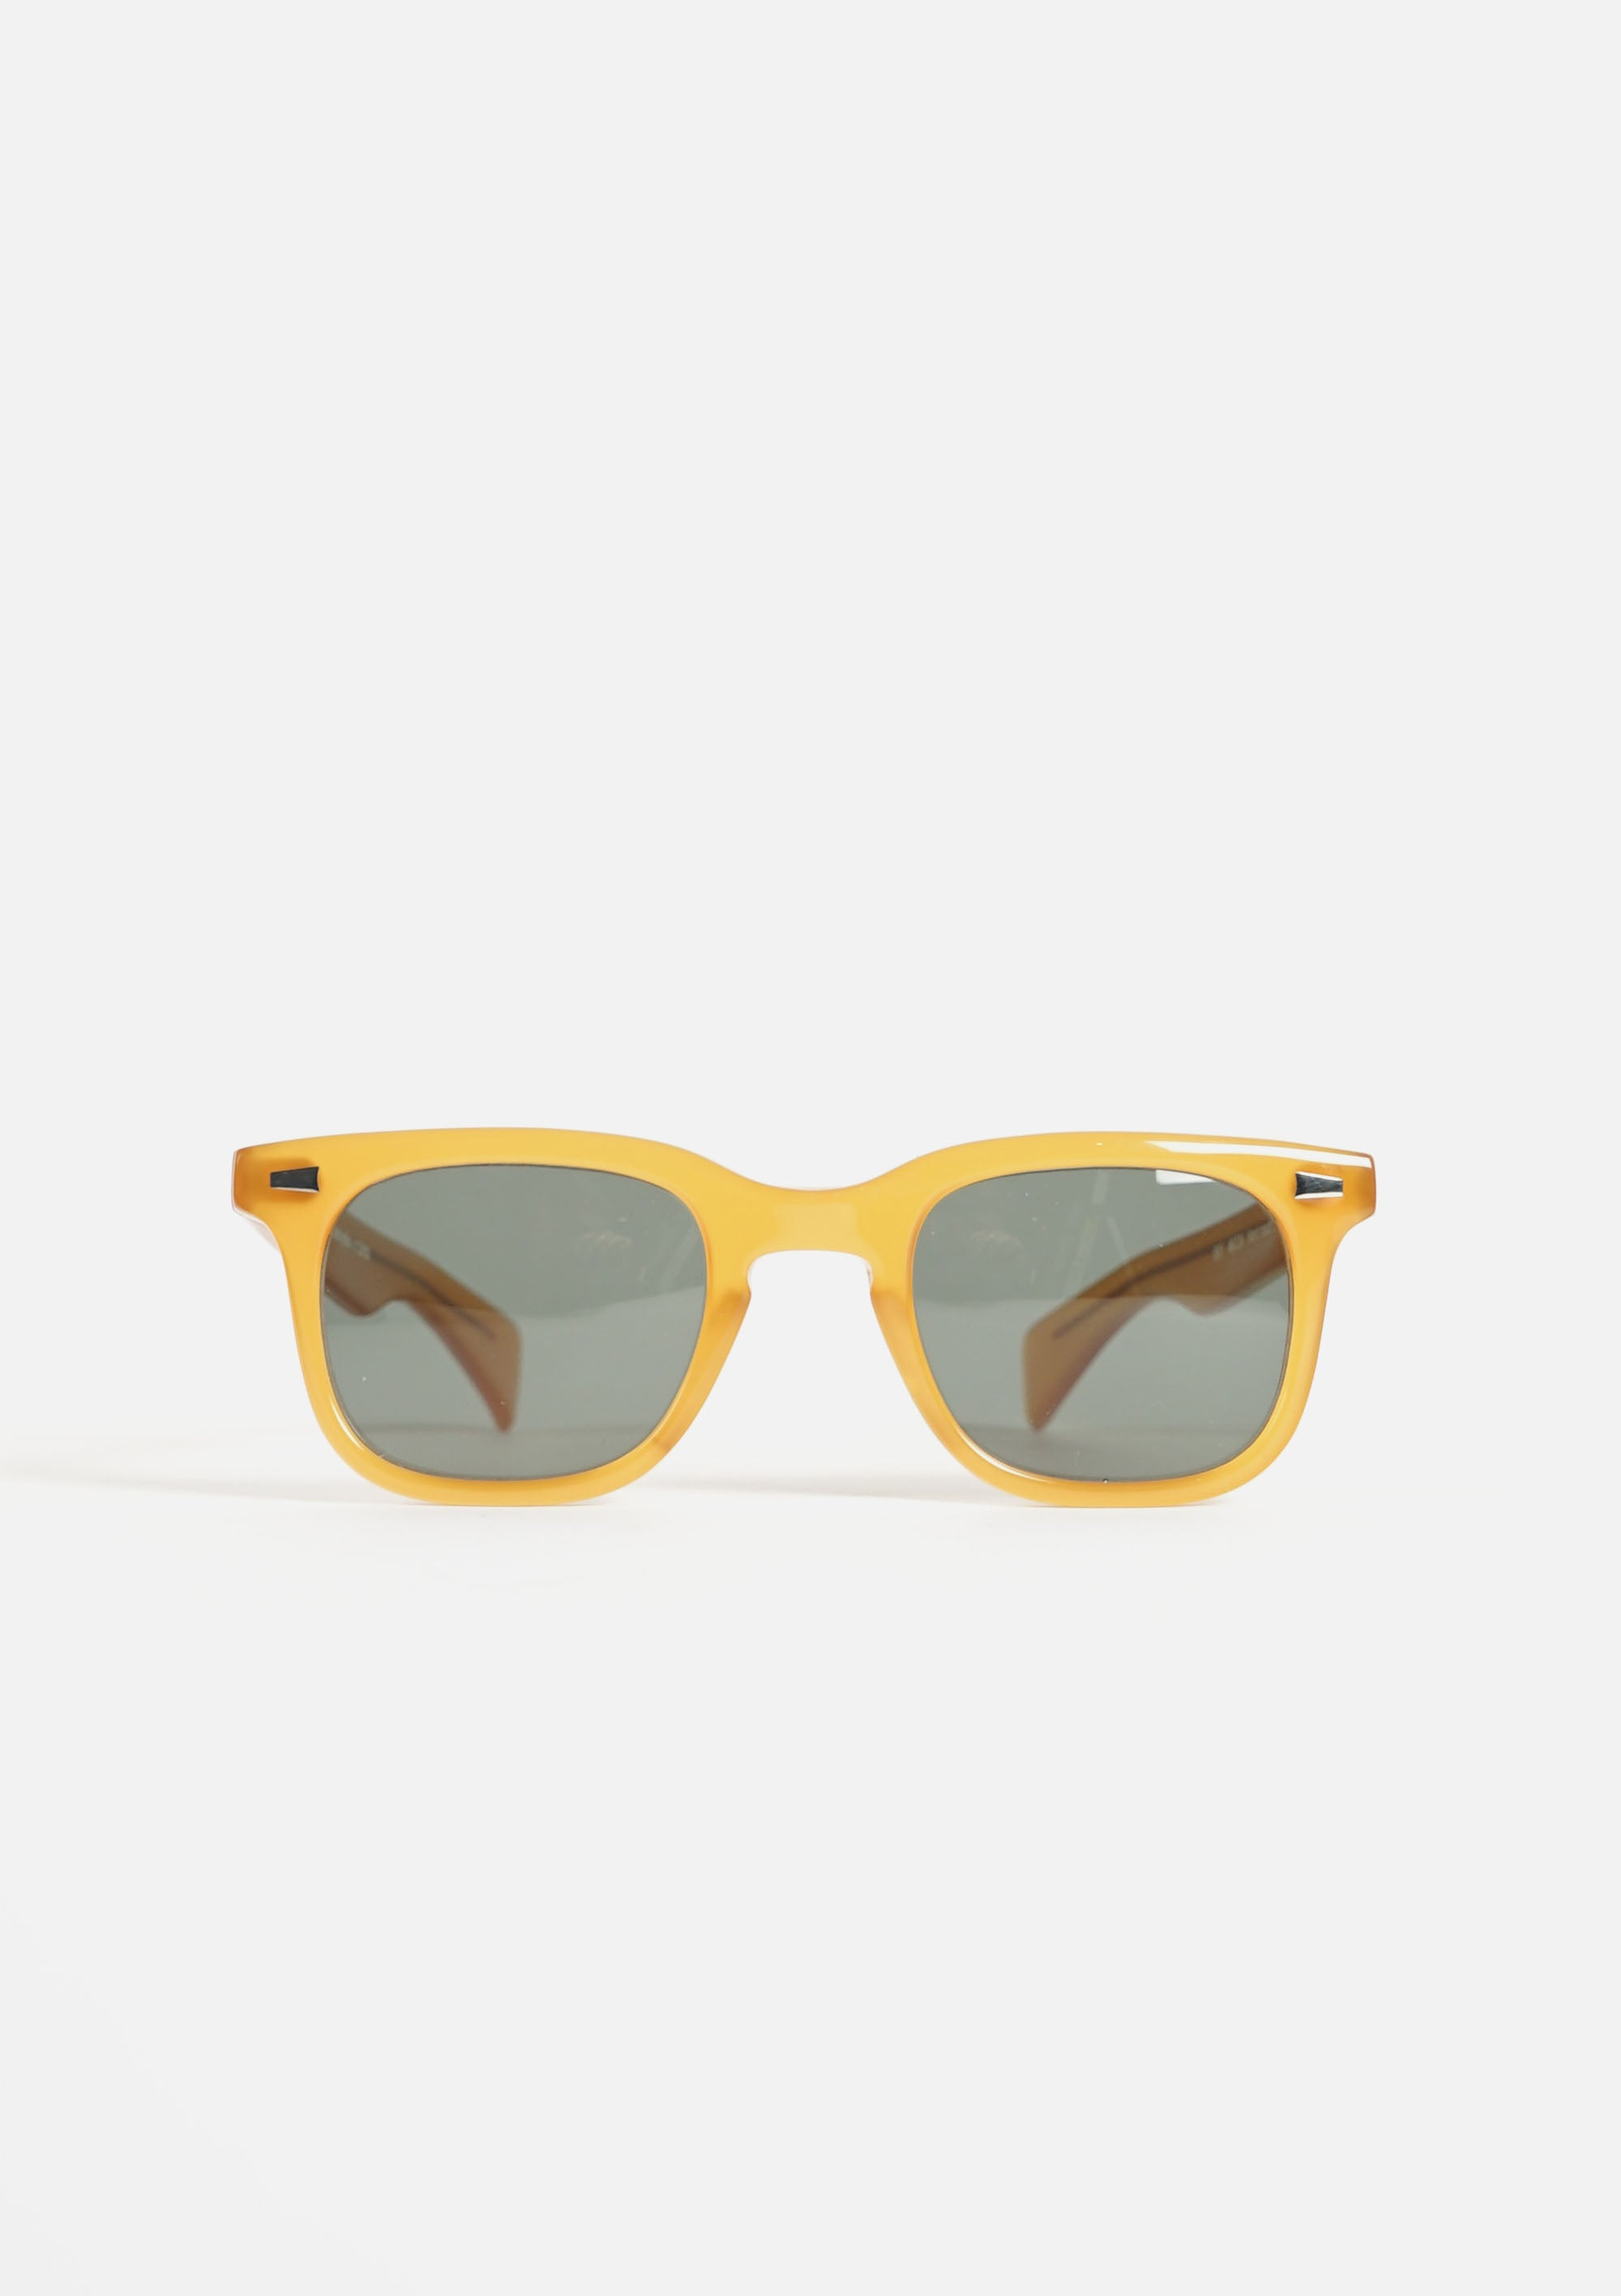 SKY Sunglasses  Light Brown